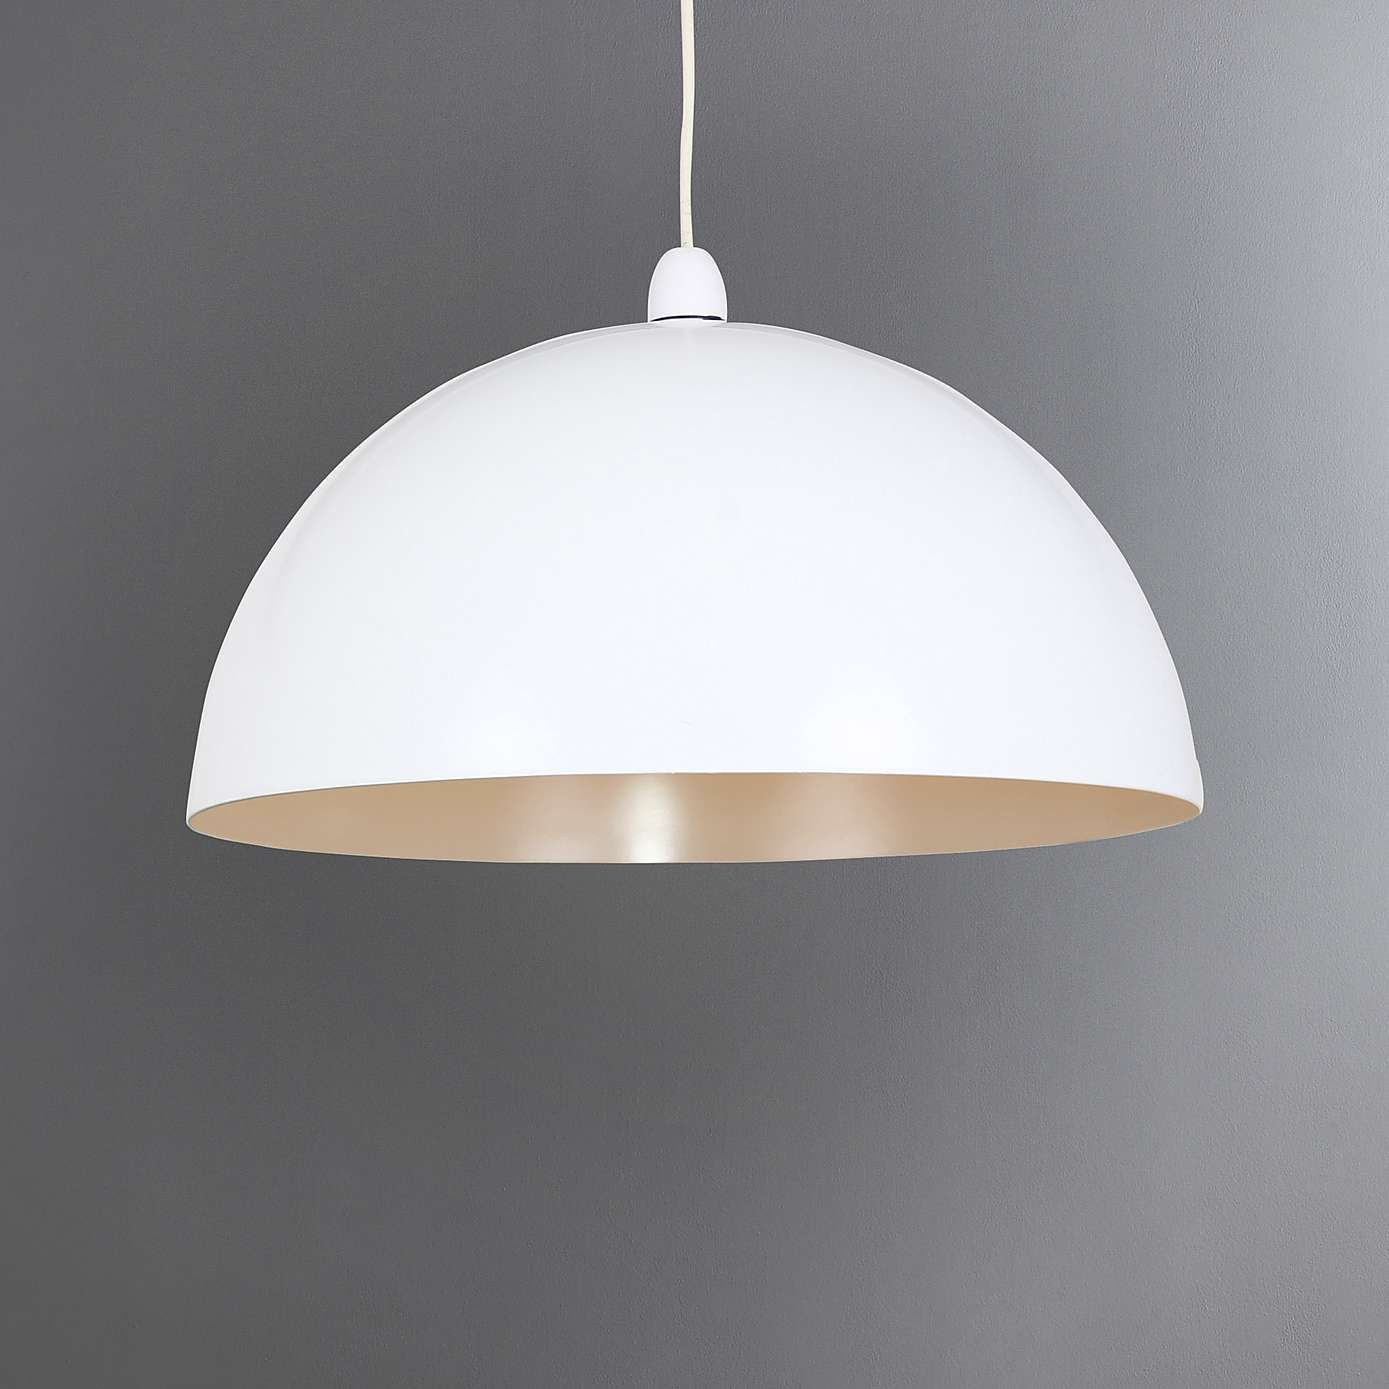 Large cut out dome metal lighting pendant shades cream - Featuring A Contemporary Dome Shape In A White Tone With A Sophisticated Grey Inner Lining This Light Pendant Is Crafted From Durable Metal